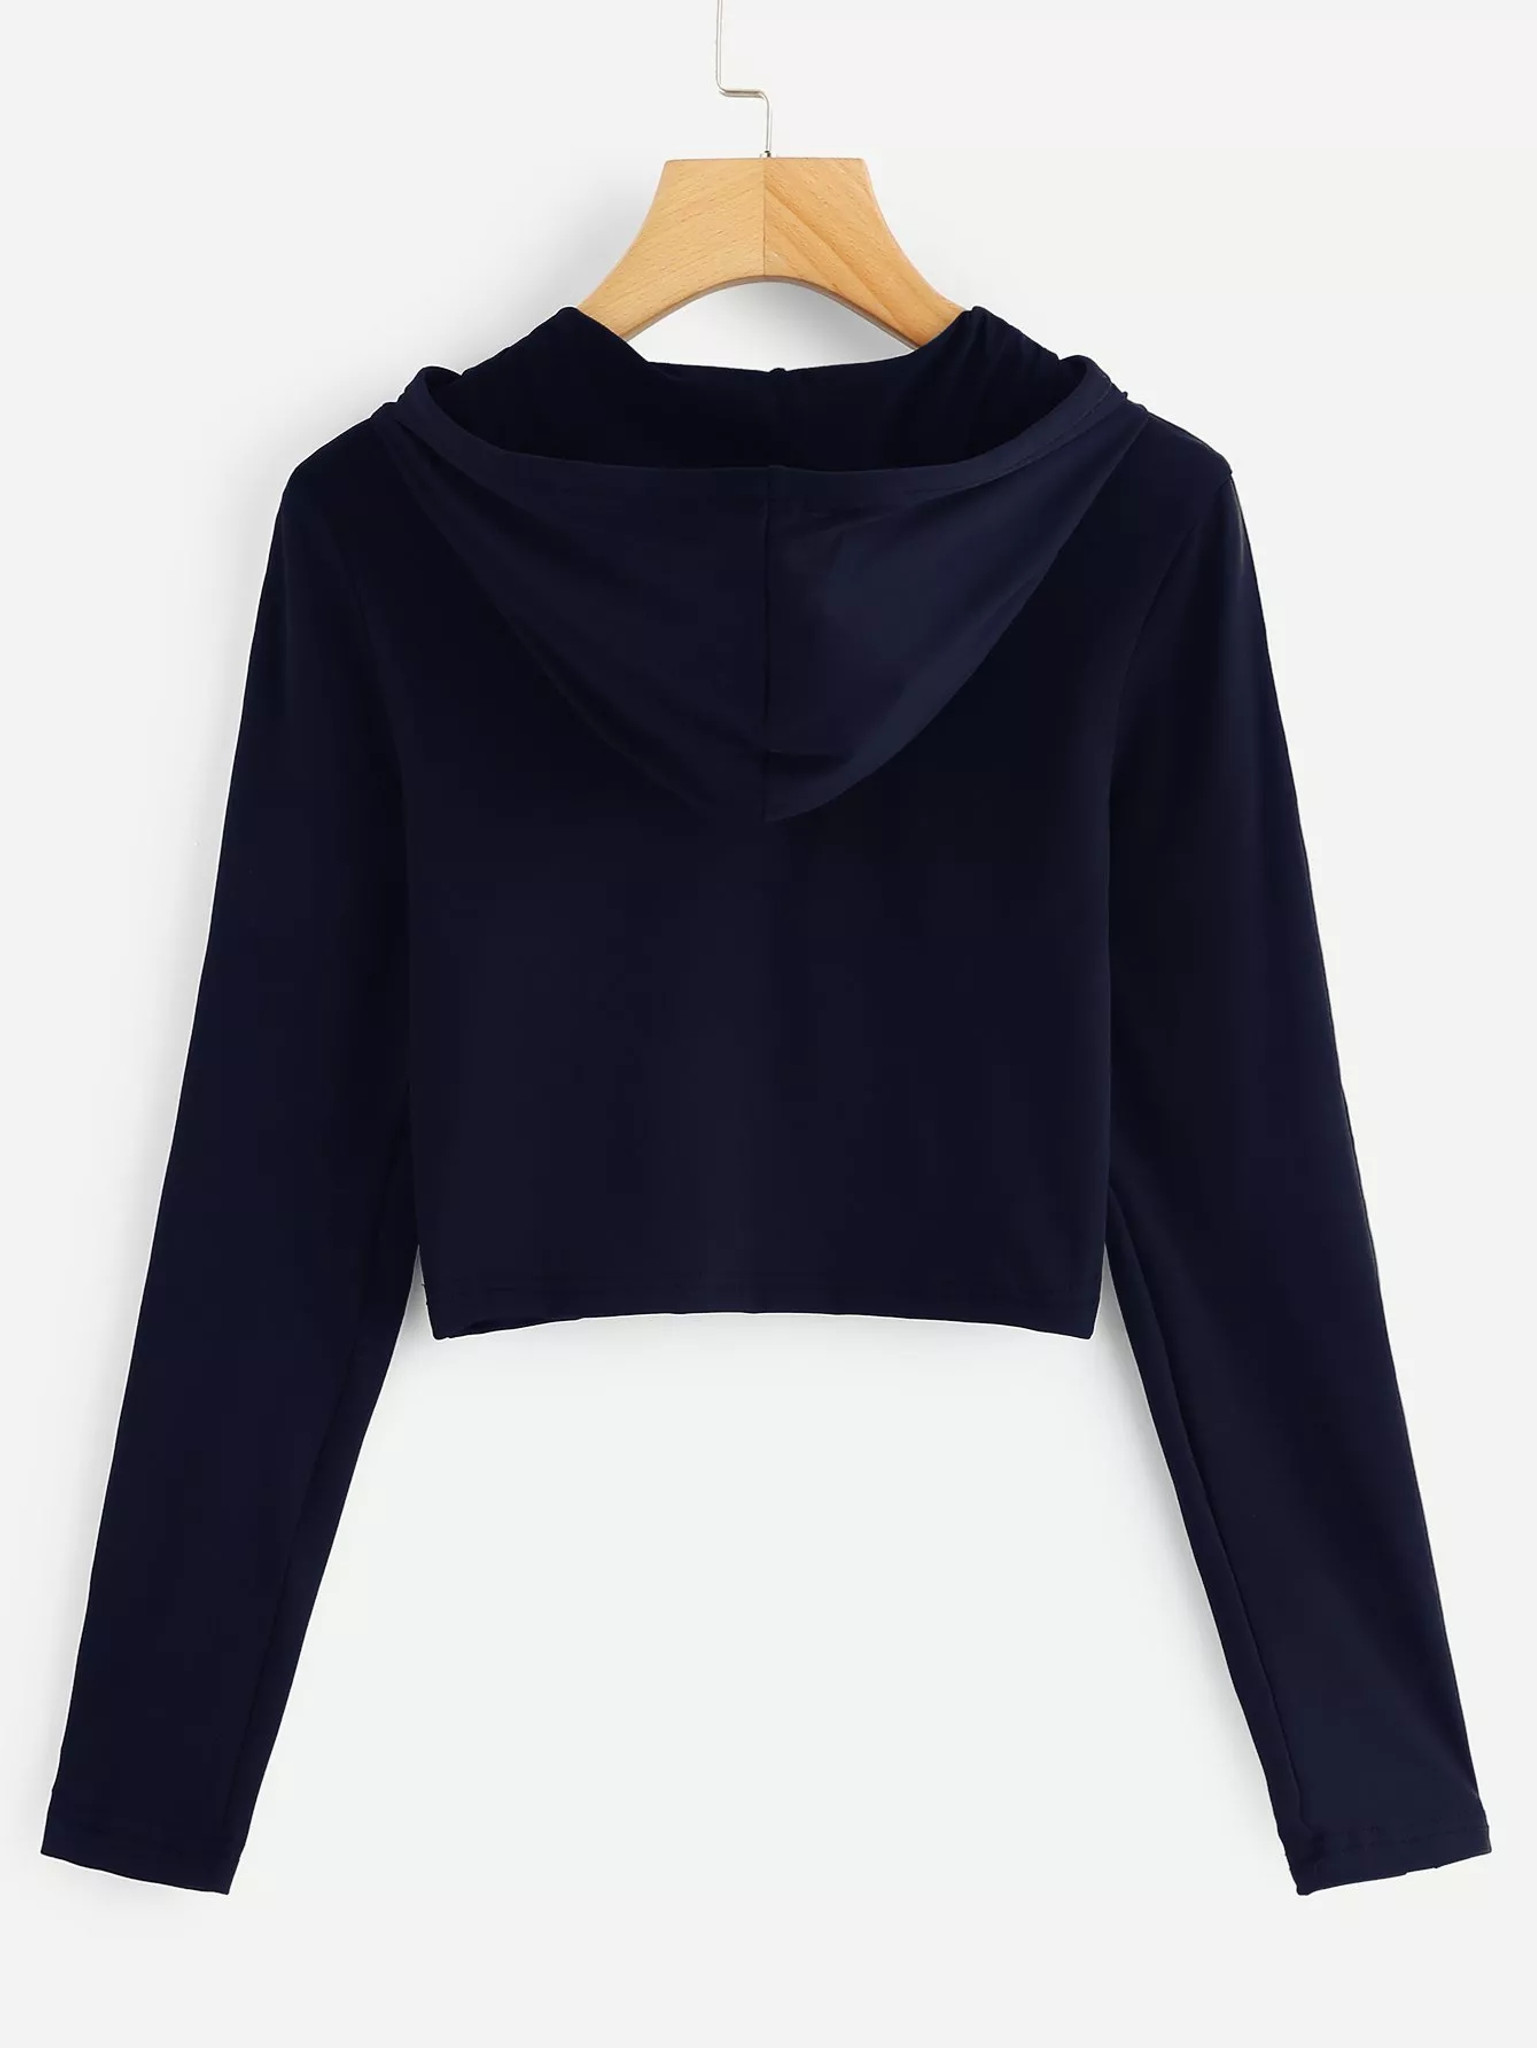 Fifth Avenue Women's STS73 Full Sleeve Striped Hooded T-Shirt - Navy Blue